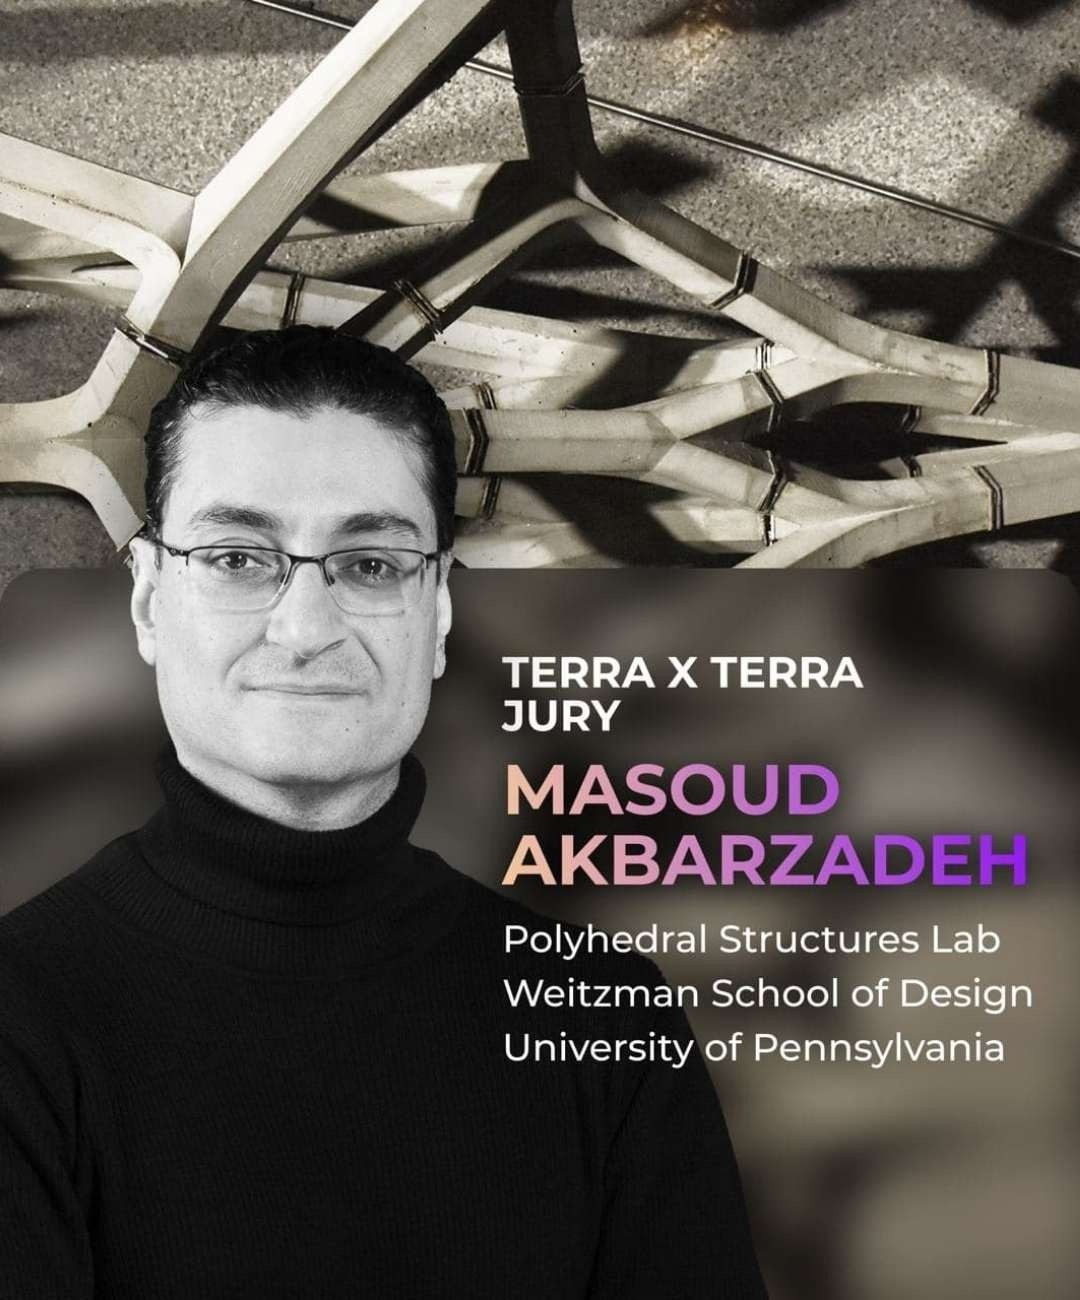 Masoud Akbarzadeh | Polyhedral Structures Lab | UPenn | Futurly